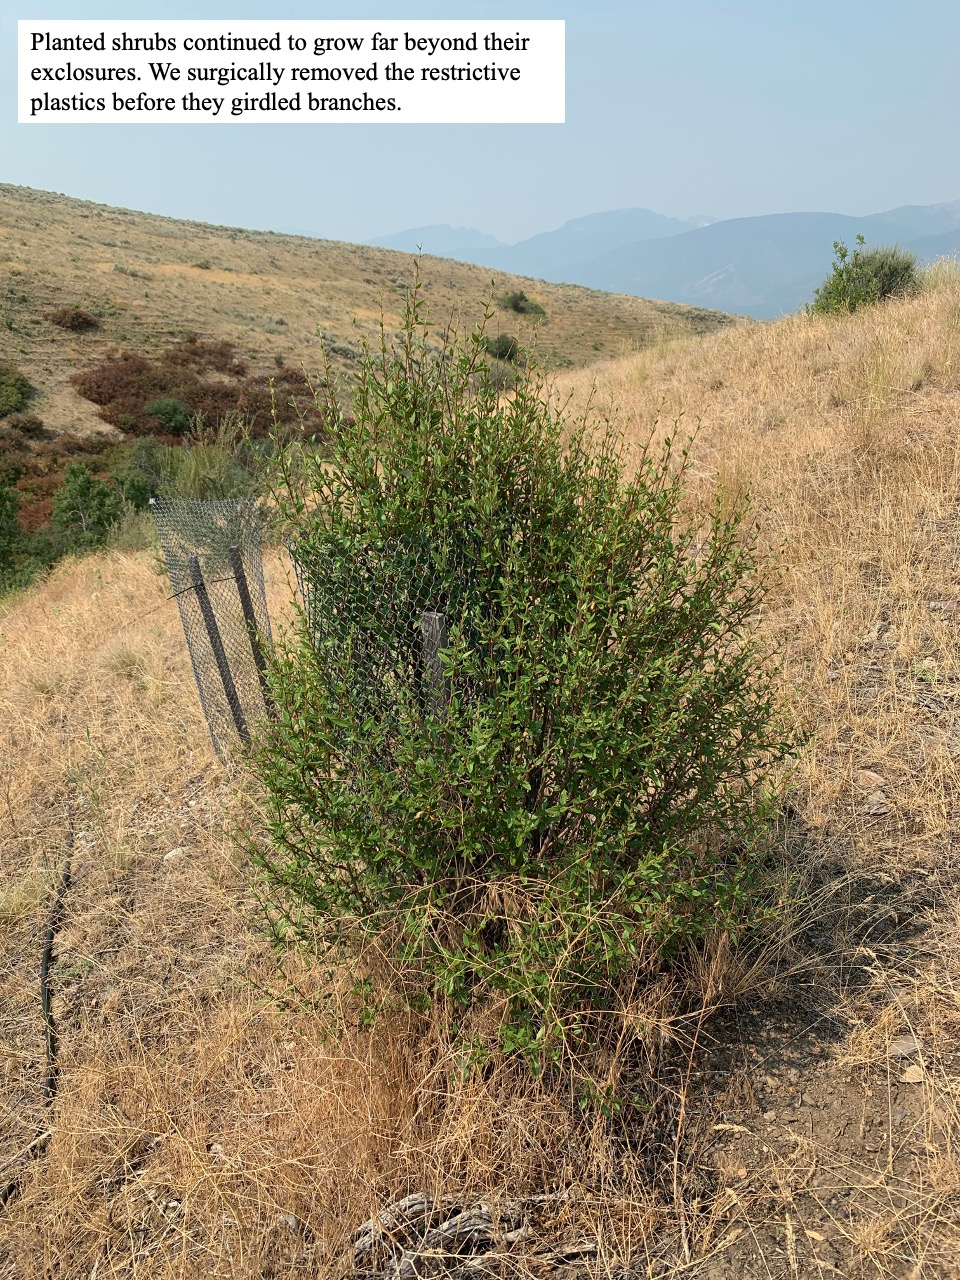 Planted shrubs continued to grow far beyond their exclosures.